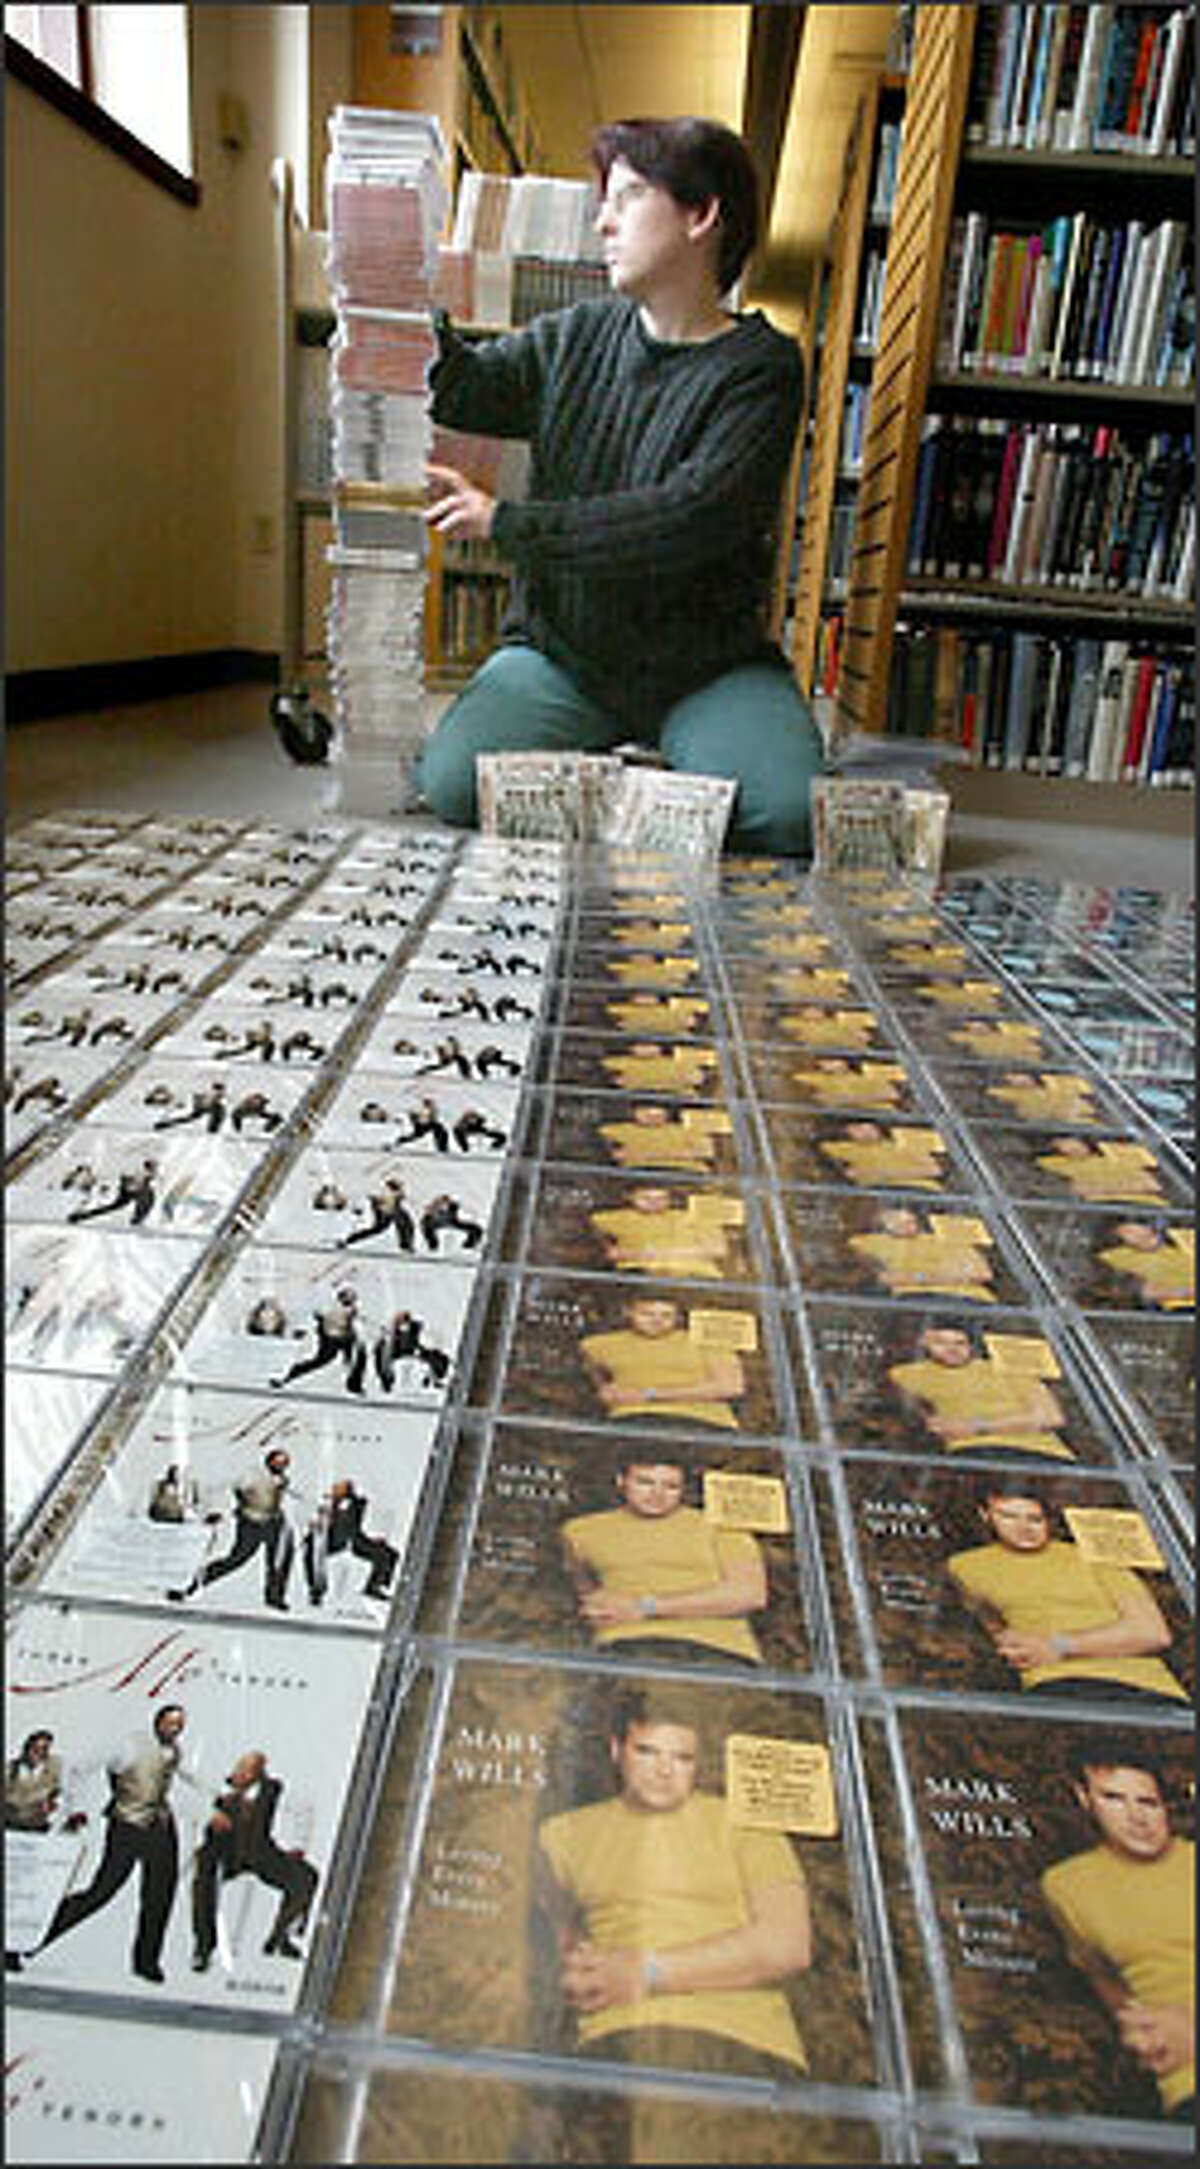 Lara Weigand, librarian for Tacoma Public Library, checks out some of the CDs the library received as part of the music industry settlement. The large number of little-known CDs has disappointed Weigand.